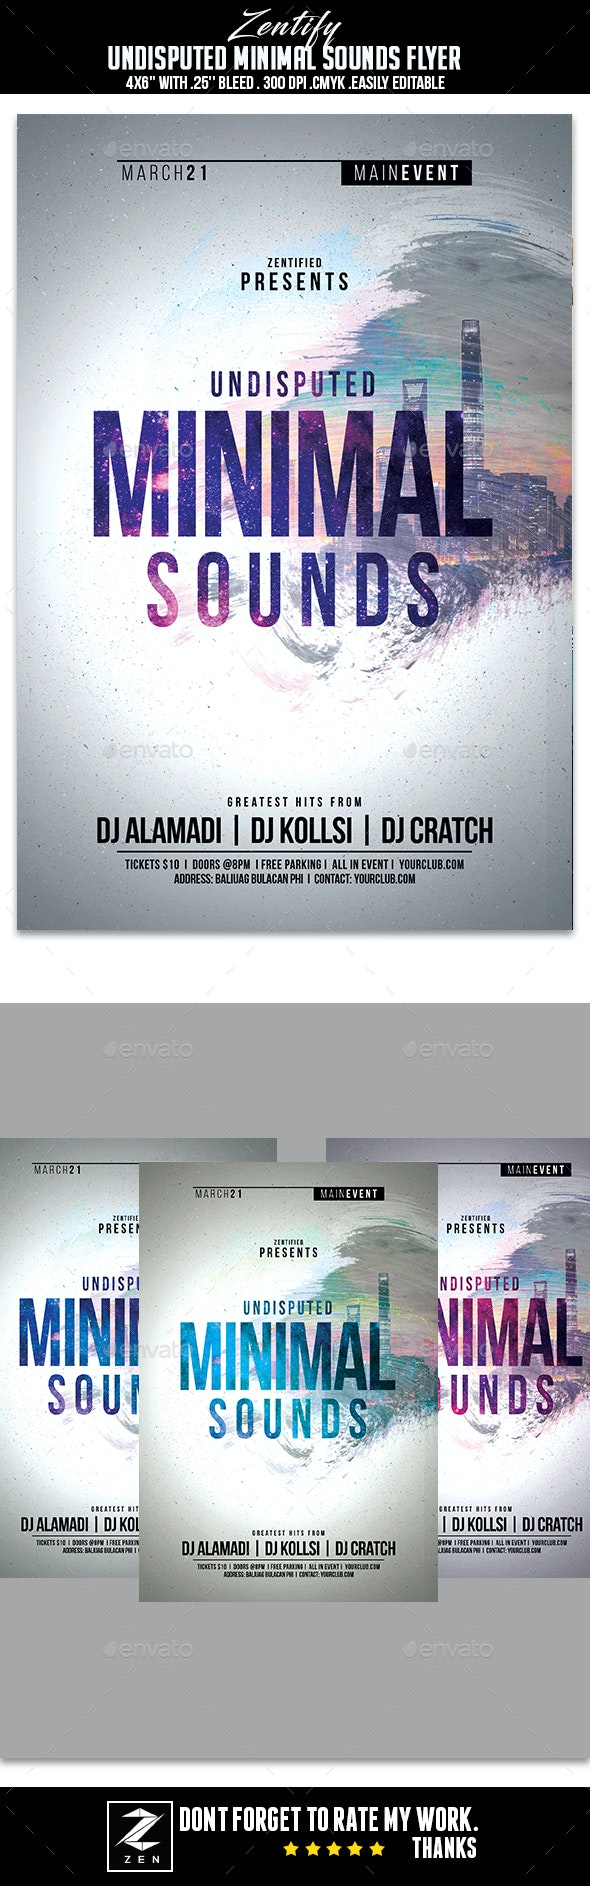 Undisputed Minimal Sounds Flyer - Flyers Print Templates